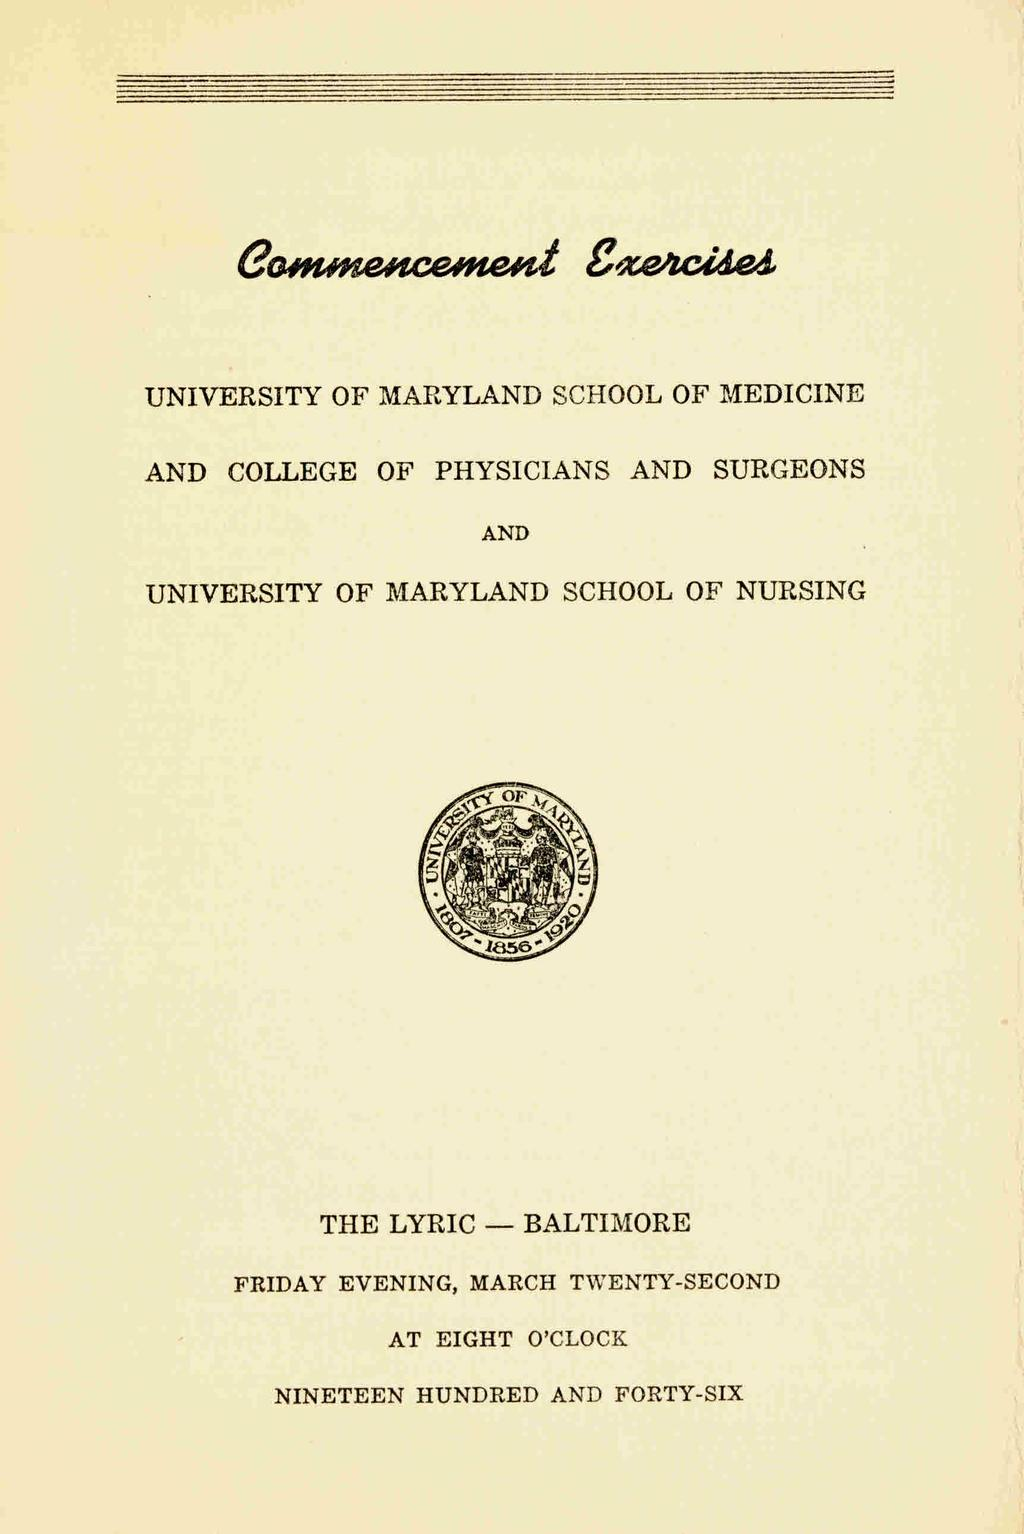 University of Maryland School of Medicine and College of Physicians ...